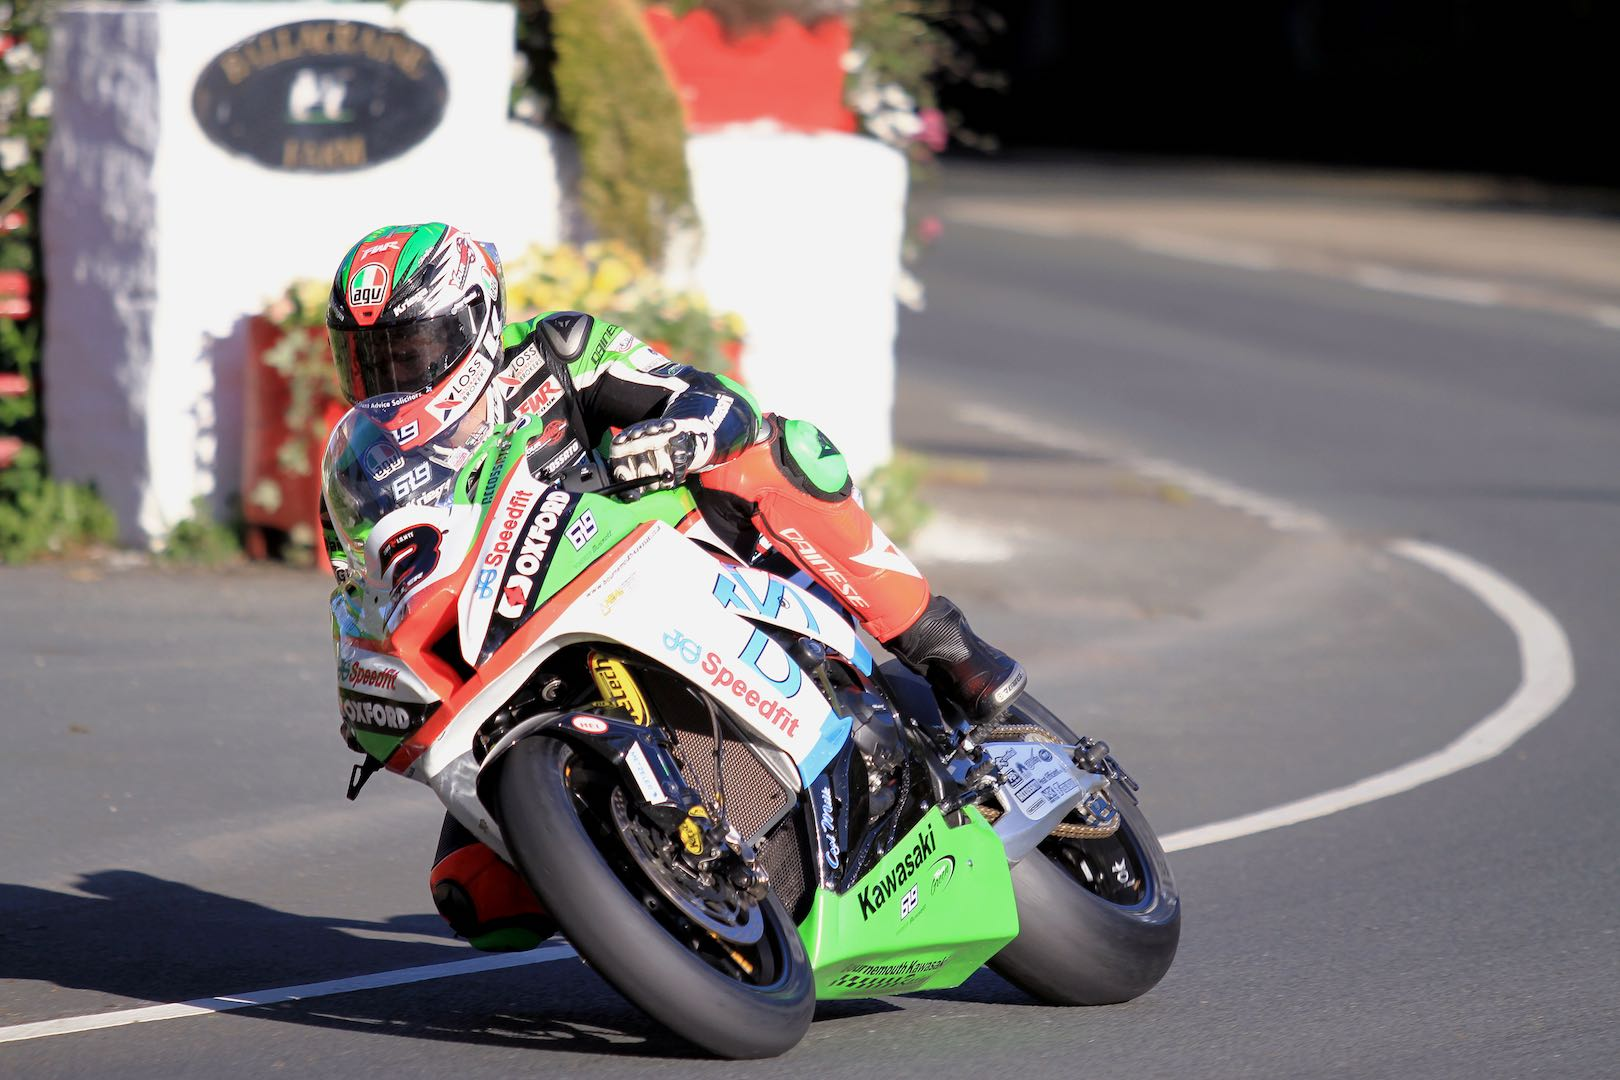 2017 Isle of Man TT Wednesday Qualifying: Kawasaki's James Hillier